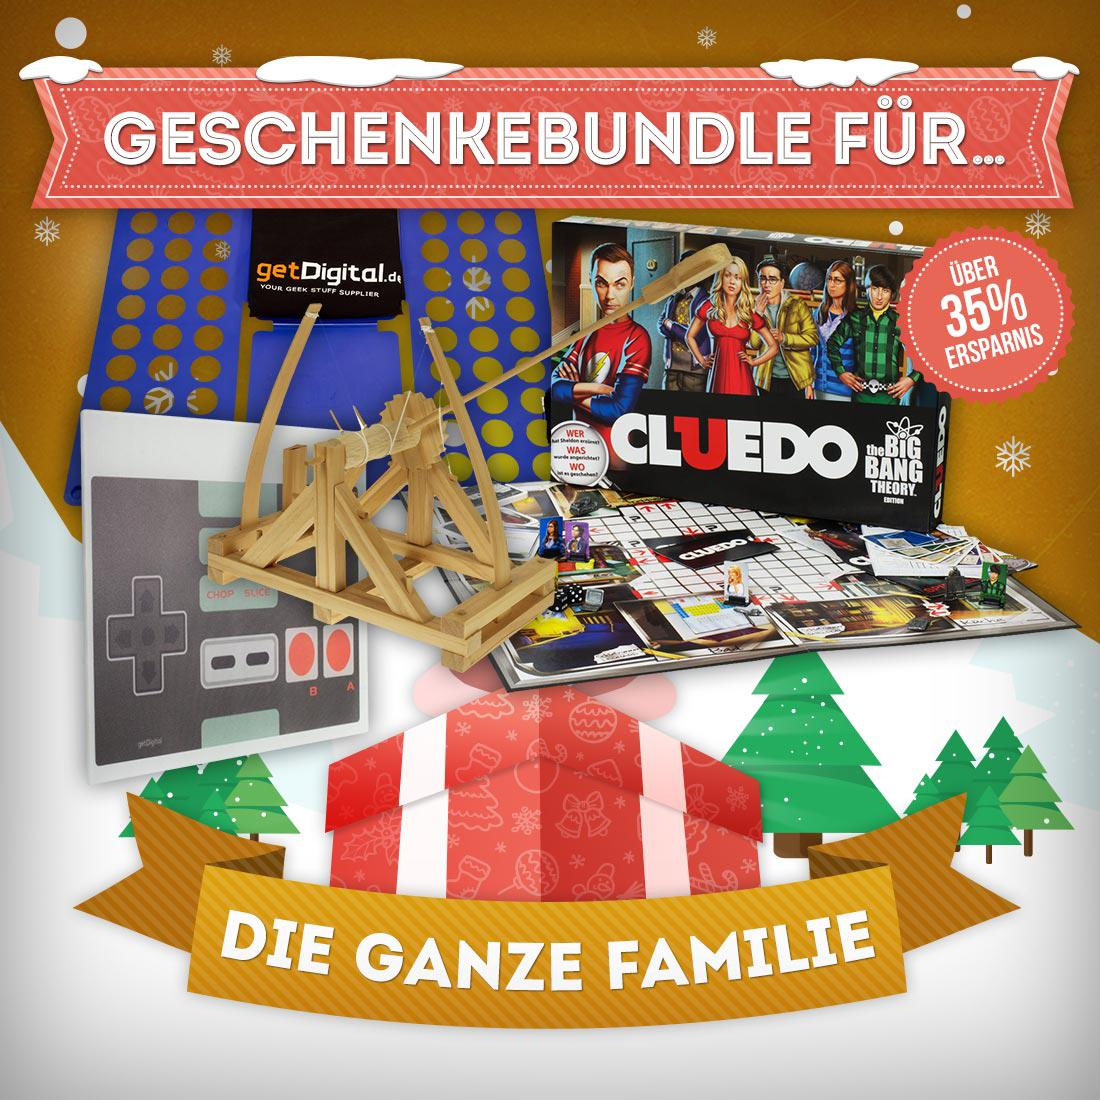 geschenke bundle f r die ganze familie getdigital. Black Bedroom Furniture Sets. Home Design Ideas